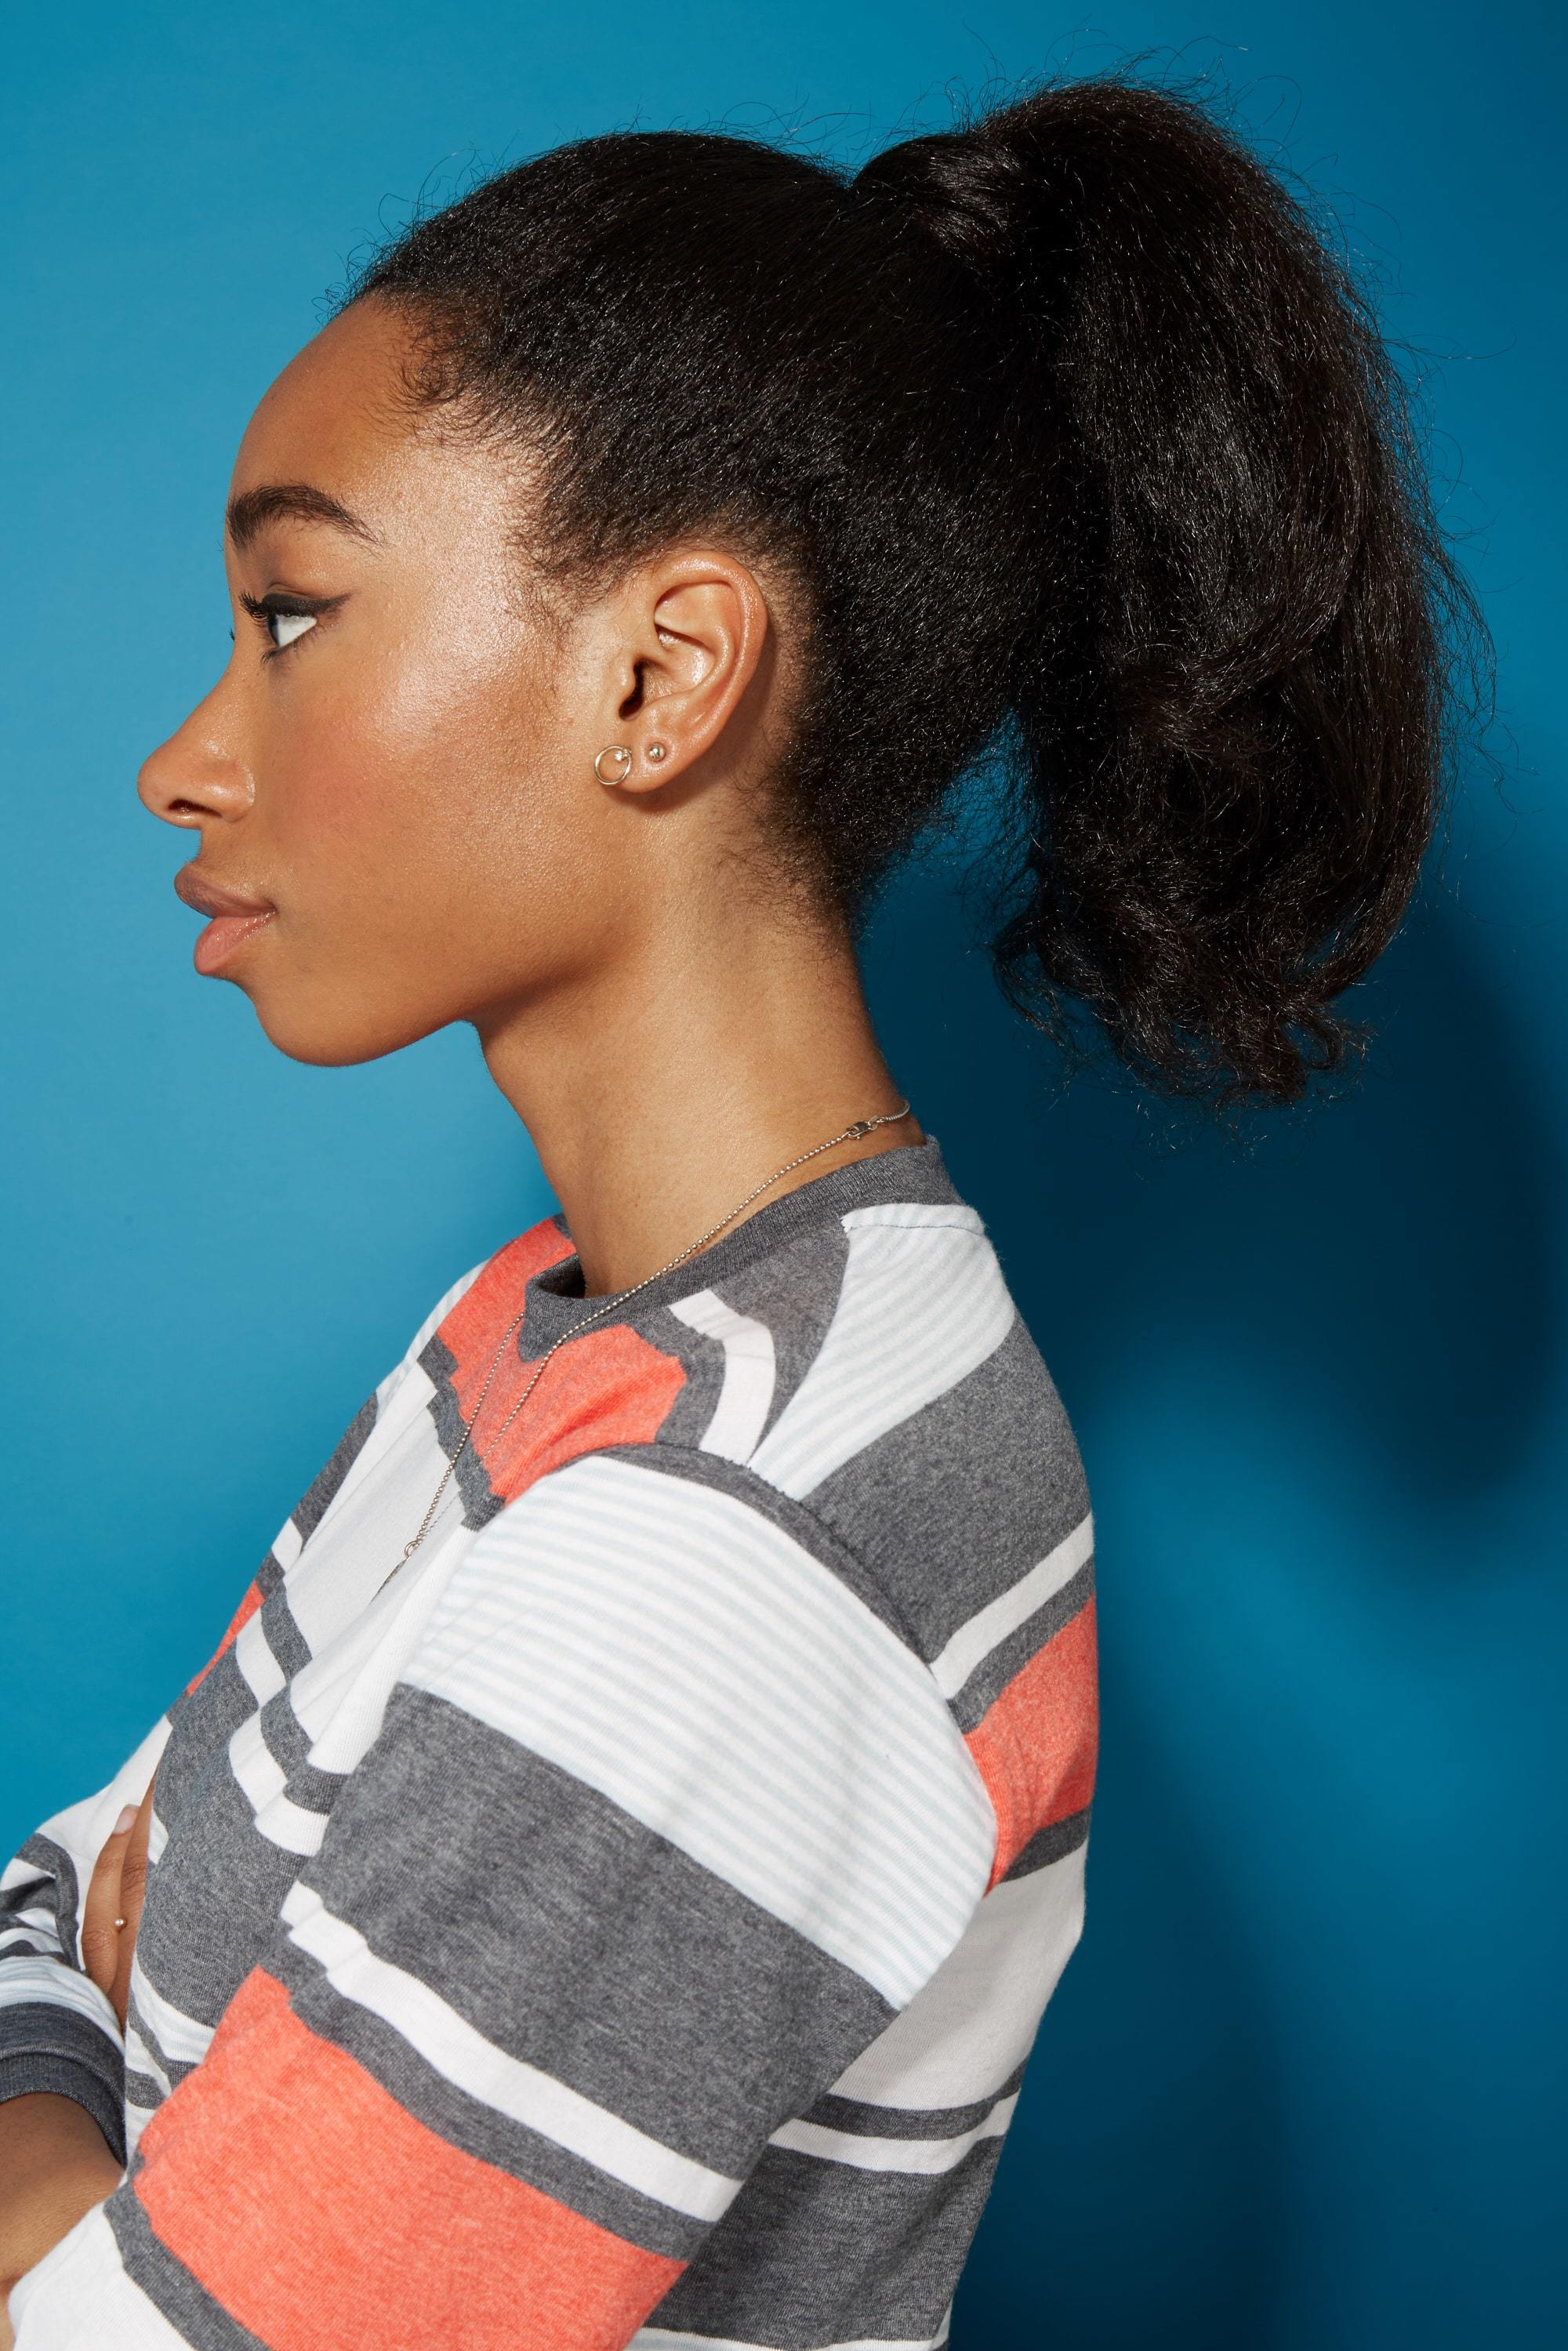 Blow out natural hair: Side profile of a woman with straightened natural hair in a high wrapped ponytail wearing a striped top.